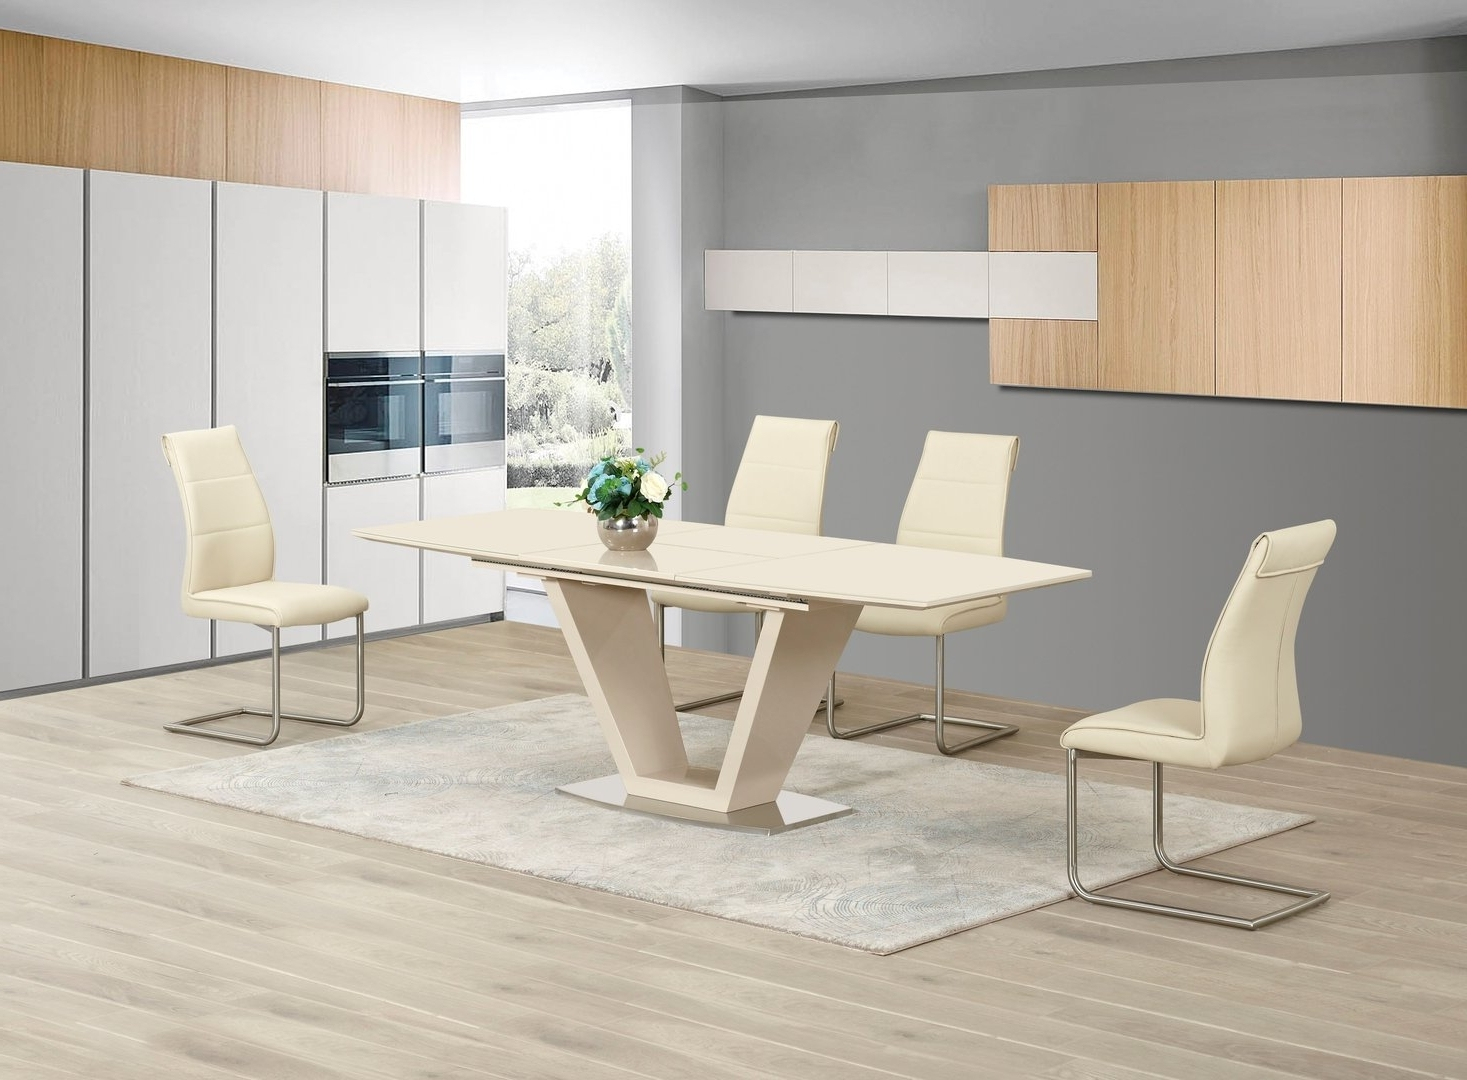 Recent Hi Gloss Dining Table Sets – Castrophotos With Regard To White Gloss Dining Tables And 6 Chairs (View 16 of 25)